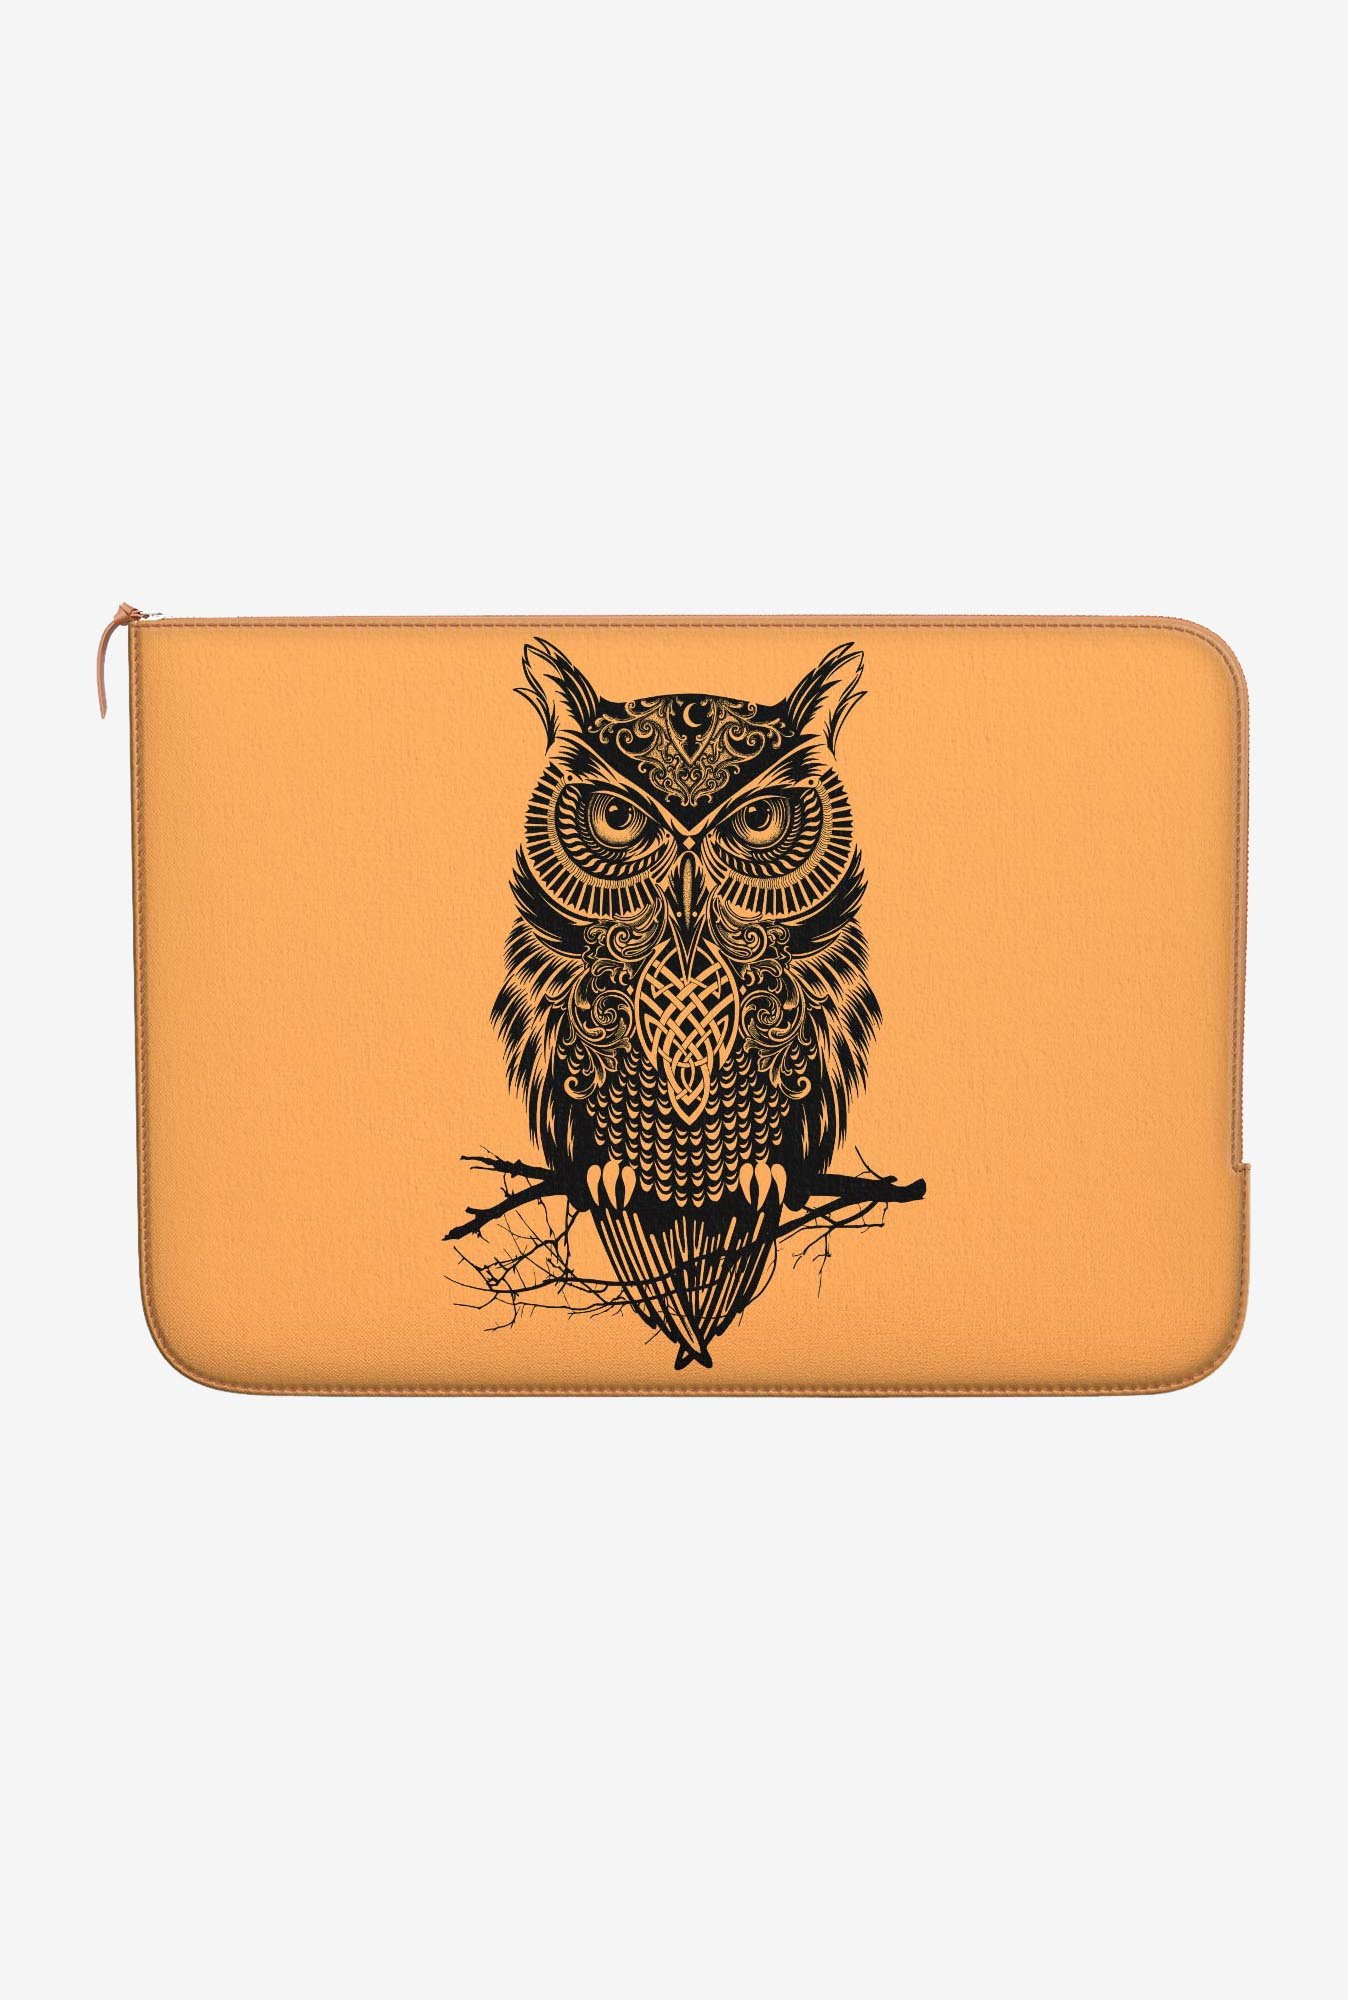 "DailyObjects Warrior Owl Macbook Air 13"" Zippered Sleeve"